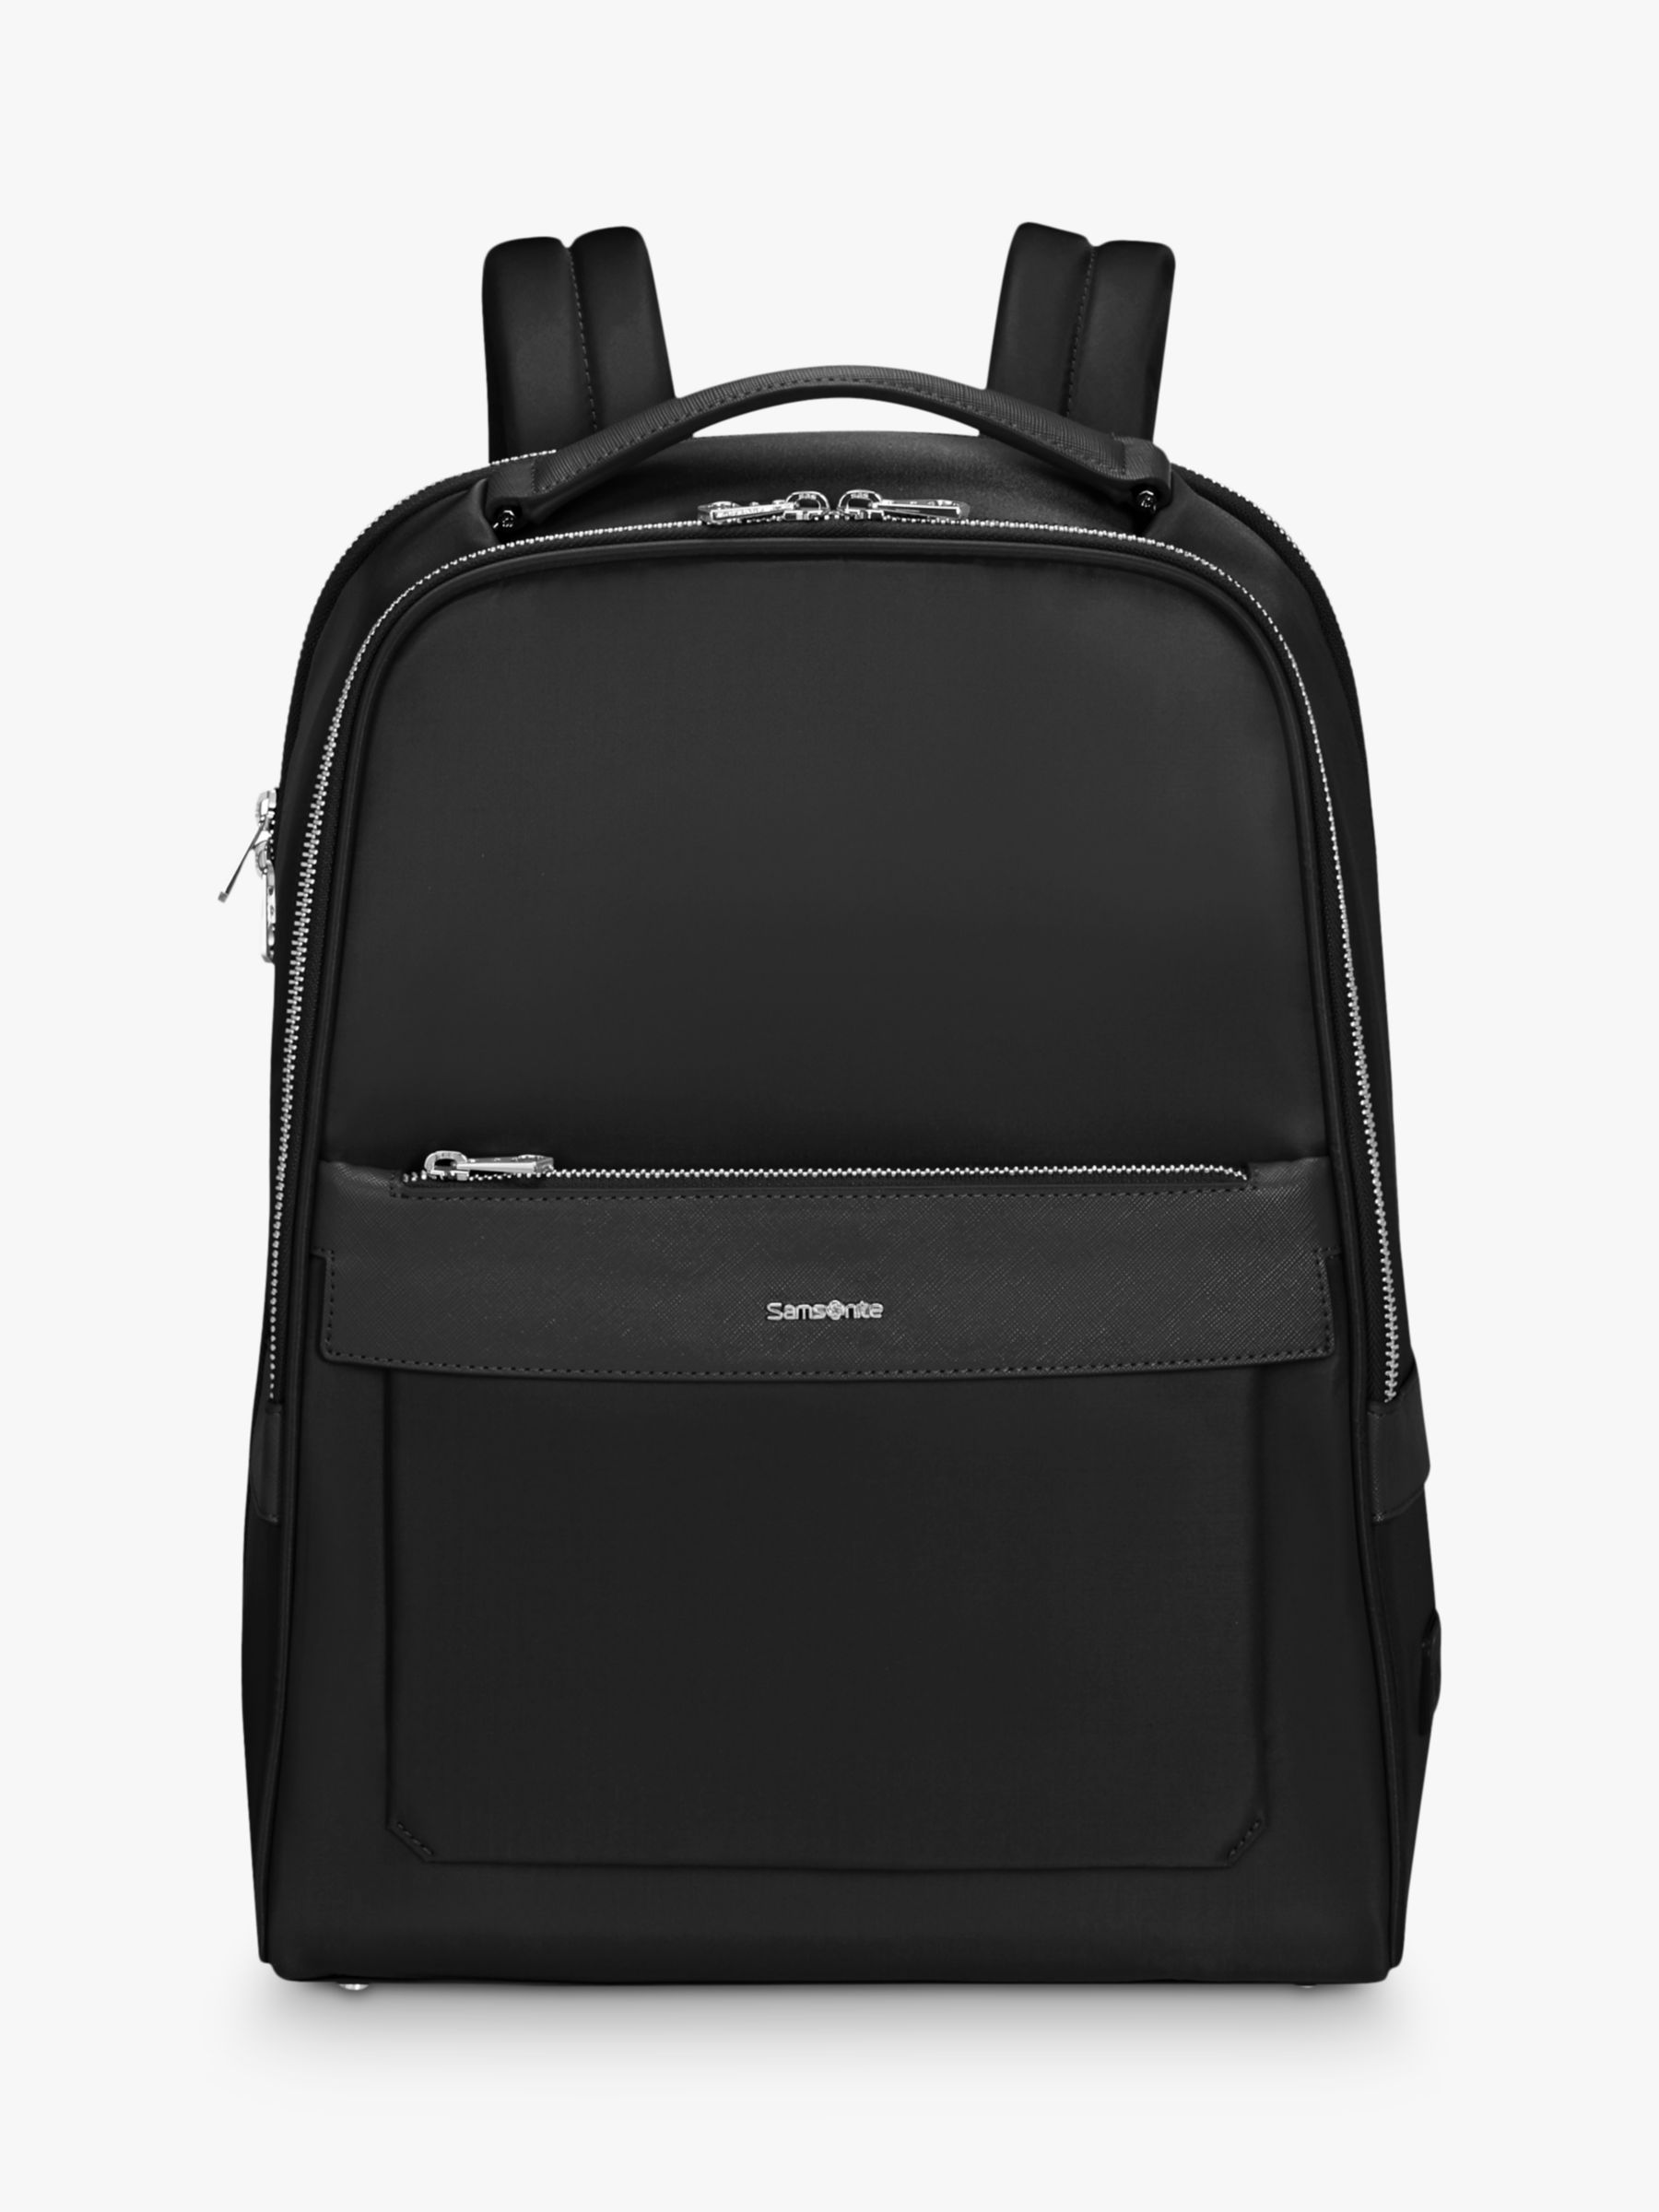 Samsonite Samsonite Zalia 2.0 14.1 Laptop Backpack